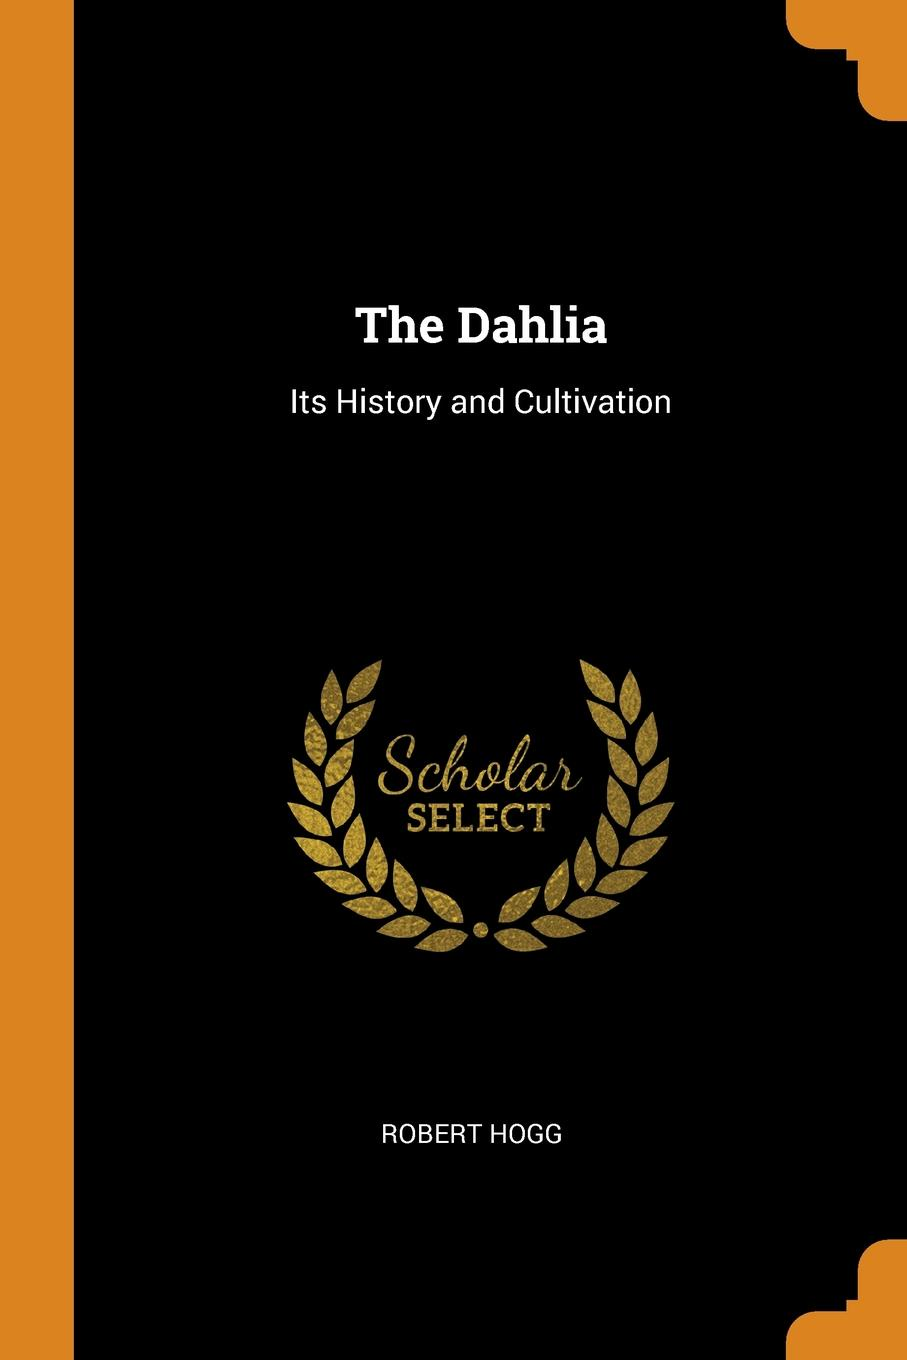 Robert Hogg. The Dahlia. Its History and Cultivation